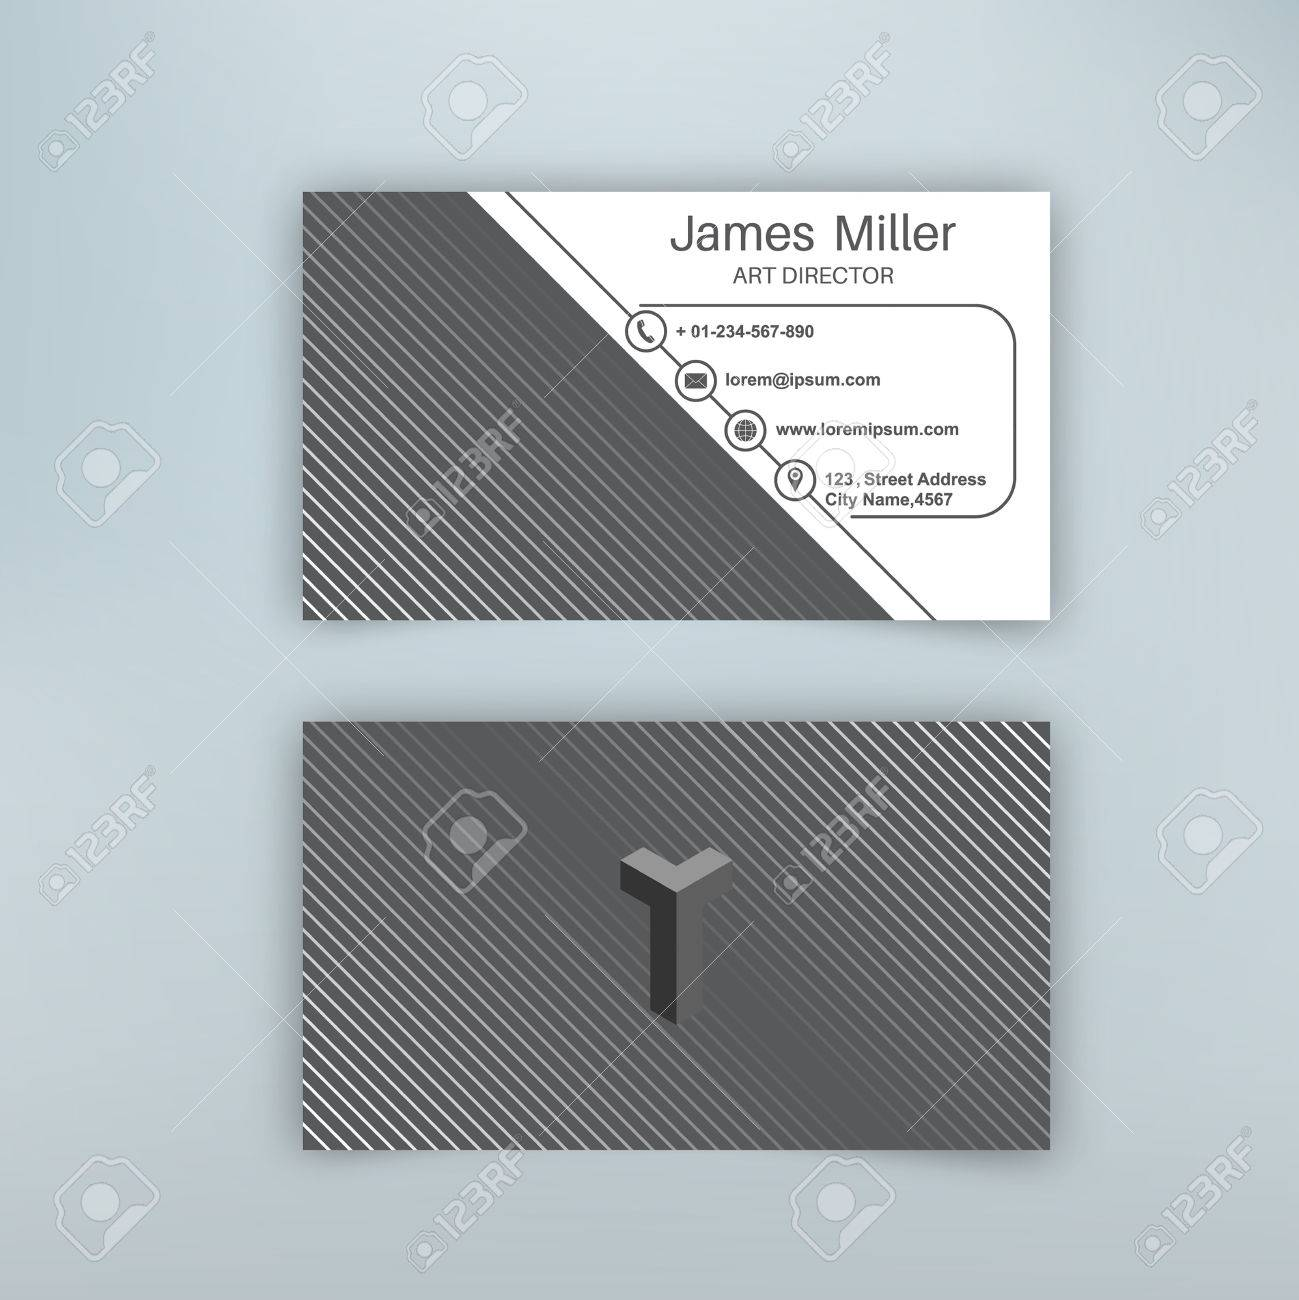 Business card blank template with textured background from thin business card blank template with textured background from thin diagonal lines minimal elegant vector design flashek Gallery